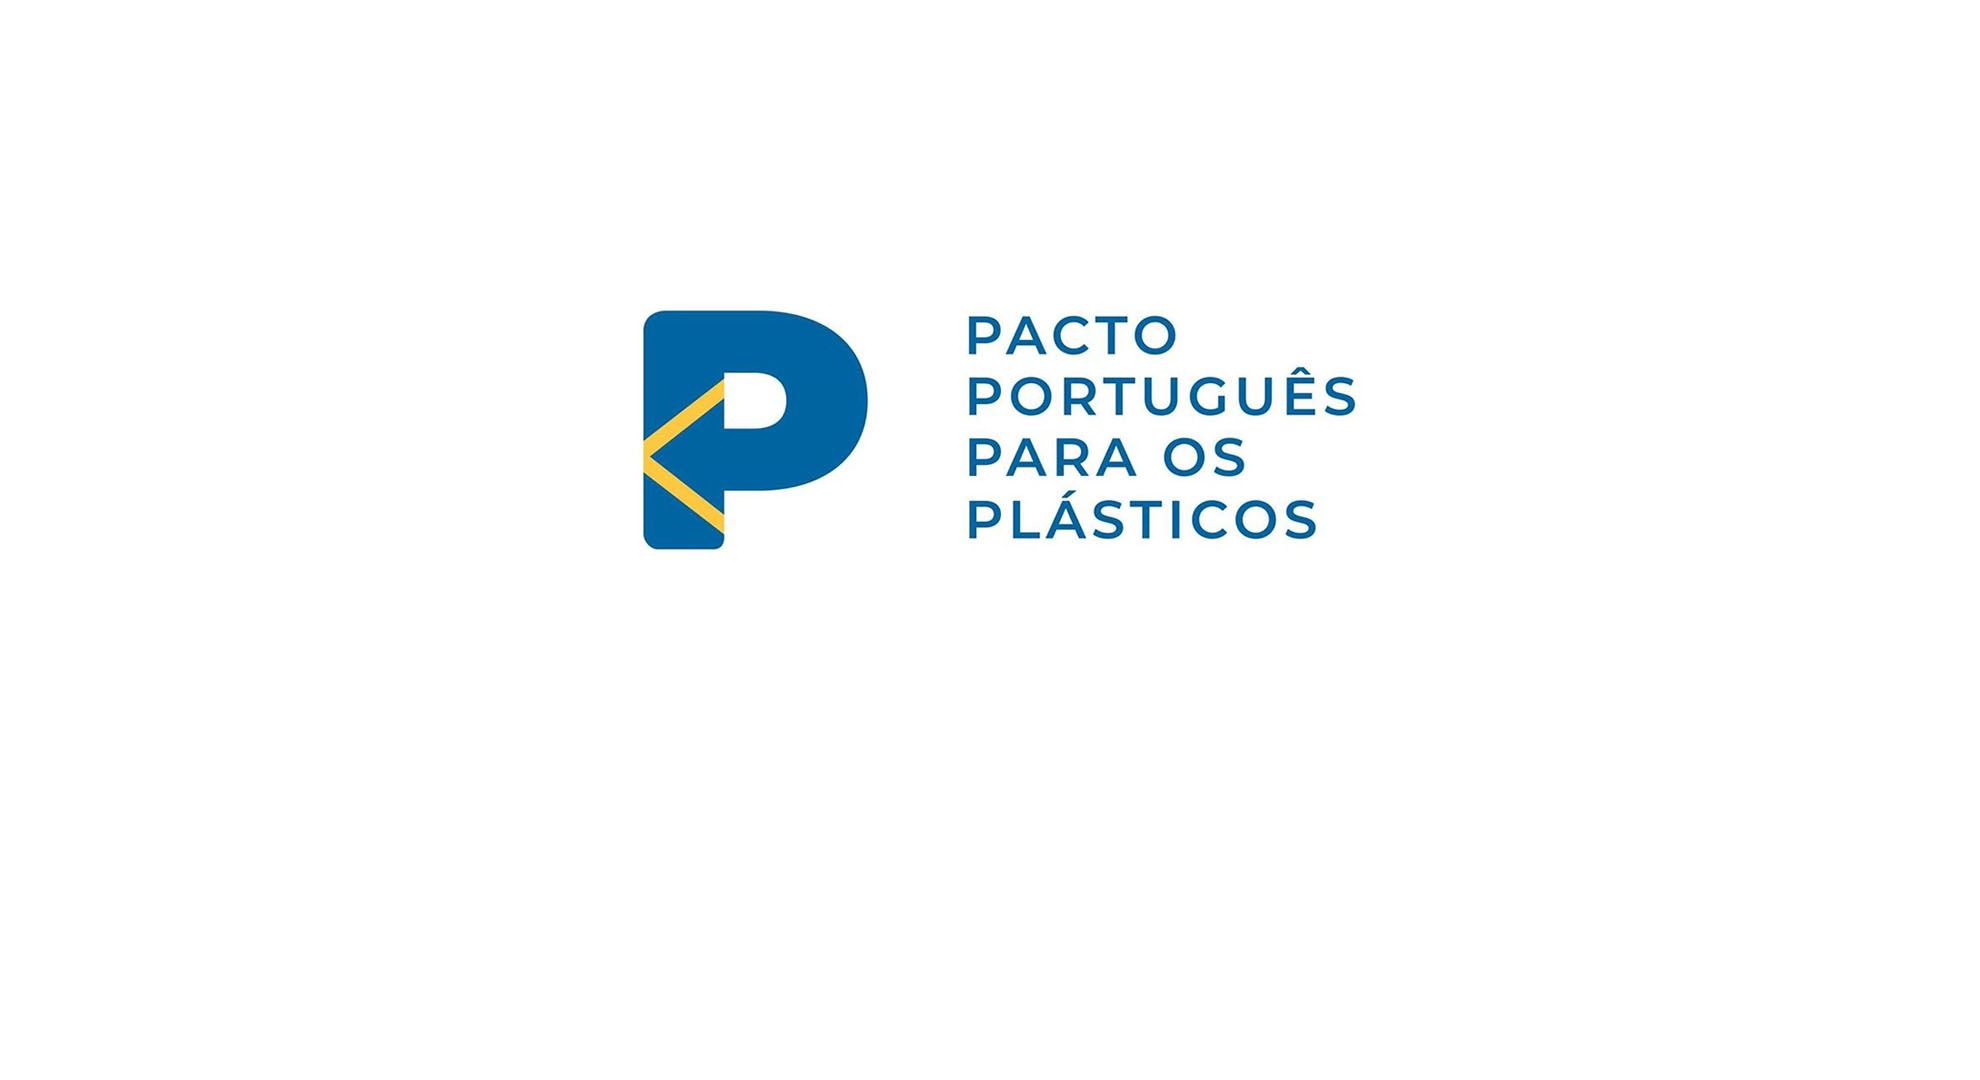 Nova SBE Becomes an Official Member of the Portuguese Plastics Pact